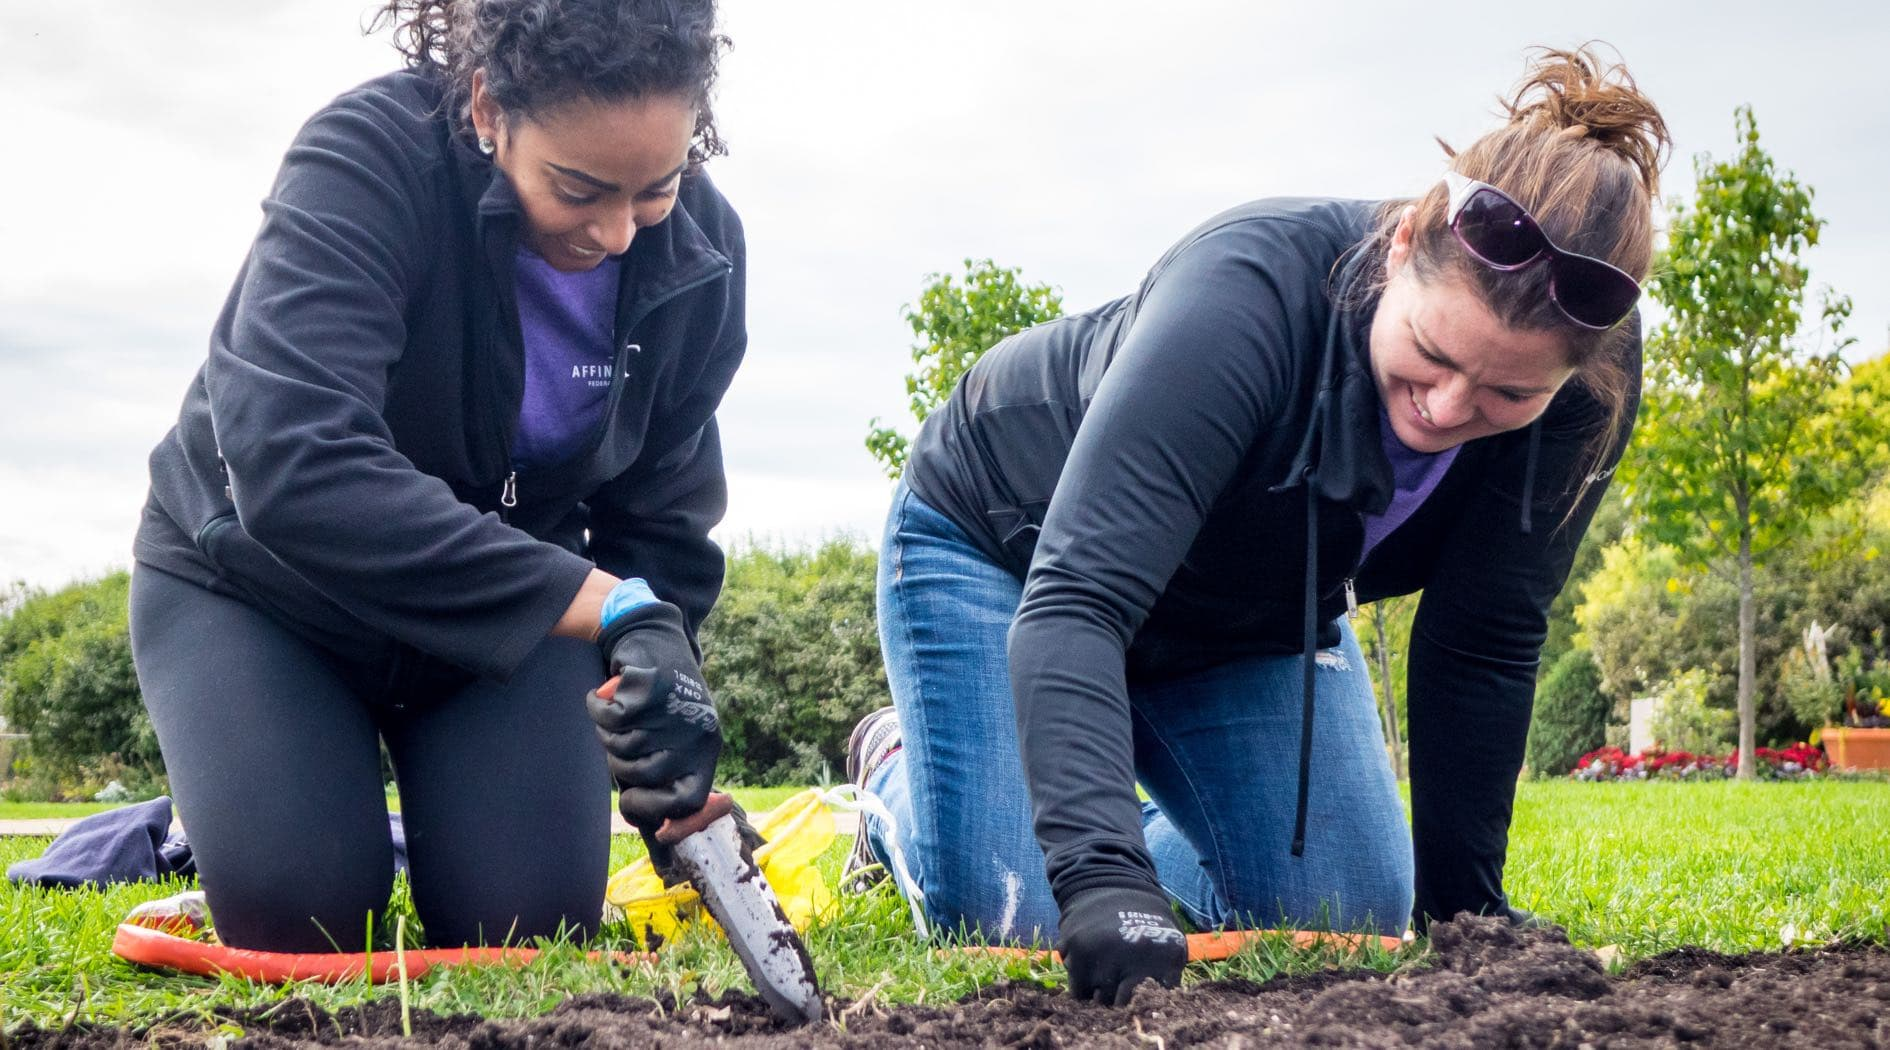 Two Affinity Plus employees gardening outdoors